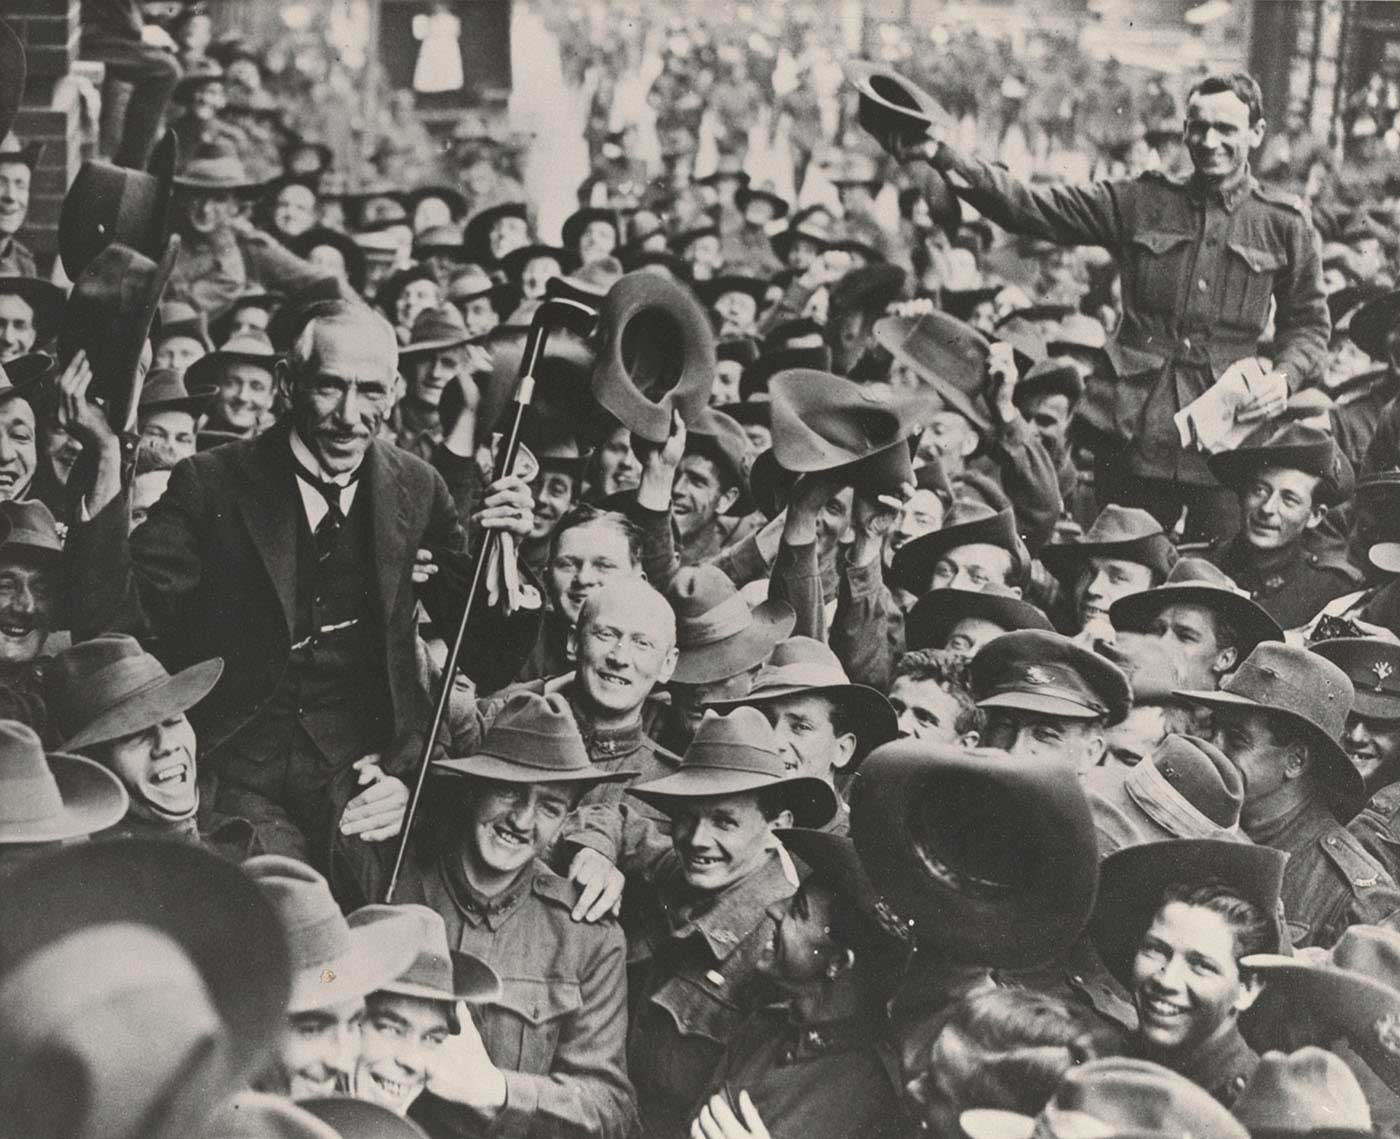 Black and white photo of a man being lifted up and celebrated by a large crowd of soldiers. - click to view larger image